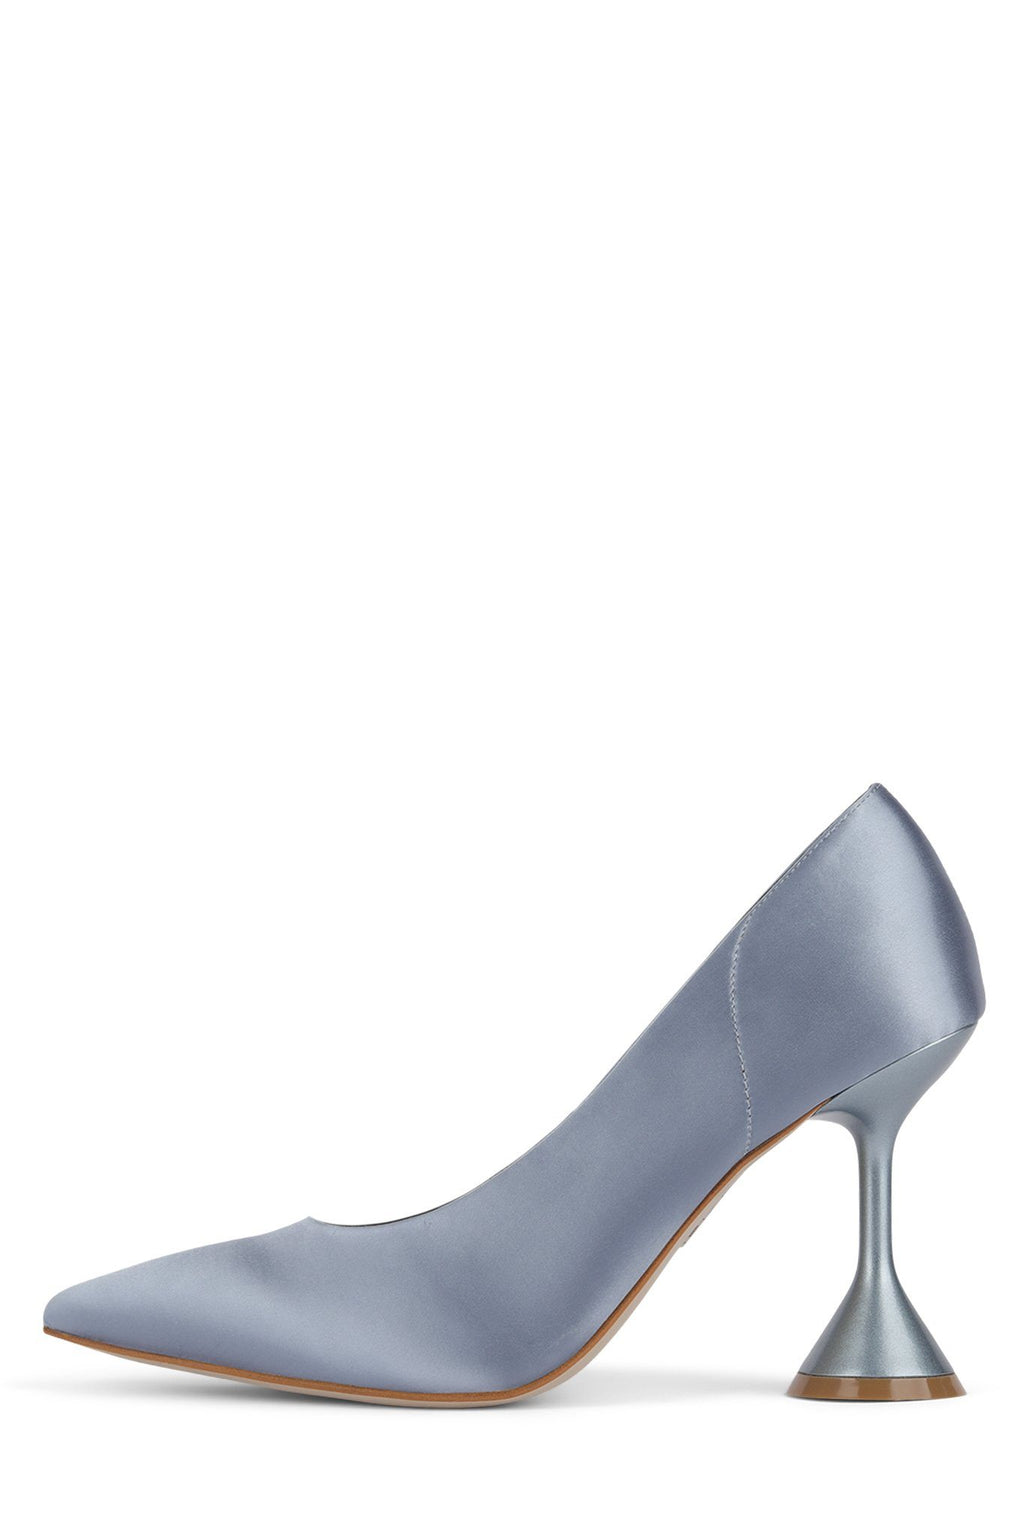 PERLAH-2 Pump ST Light Blue Satin 6